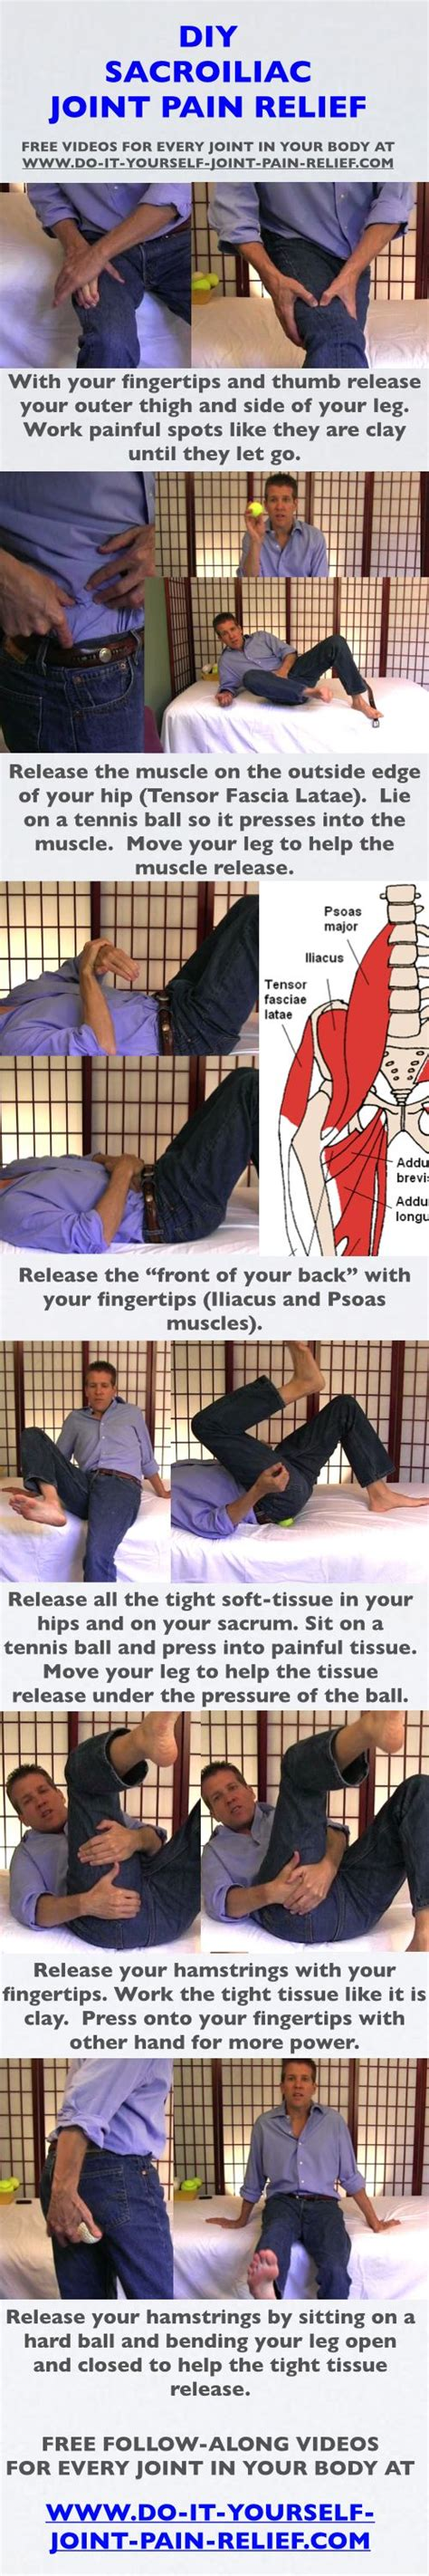 do it yourself joint pain relief picture 11